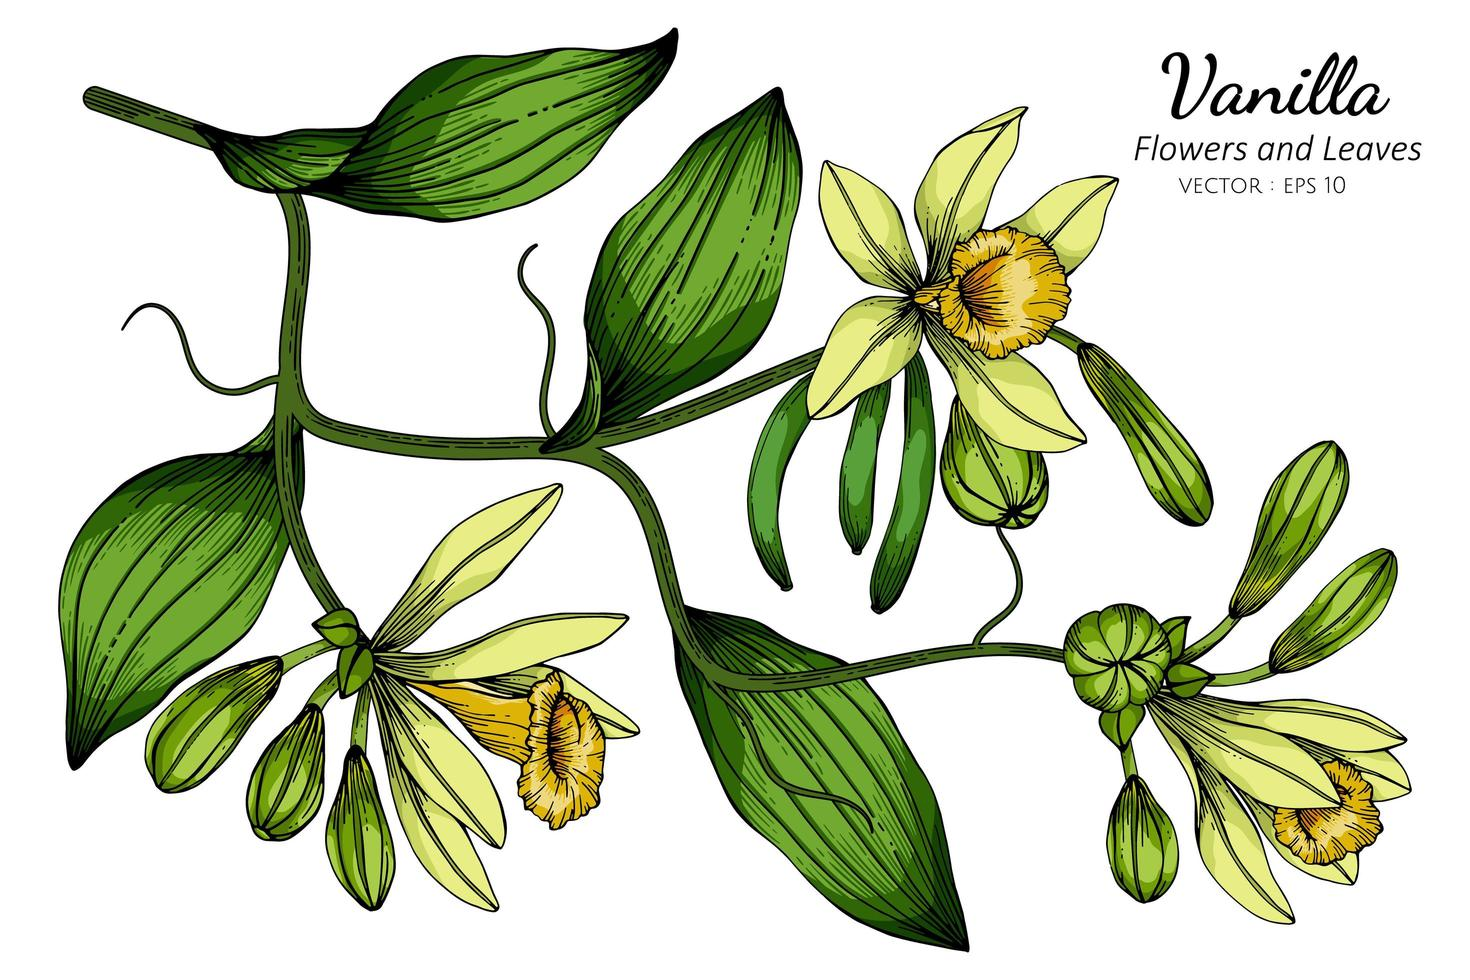 Vanilla flower and leaf drawing vector